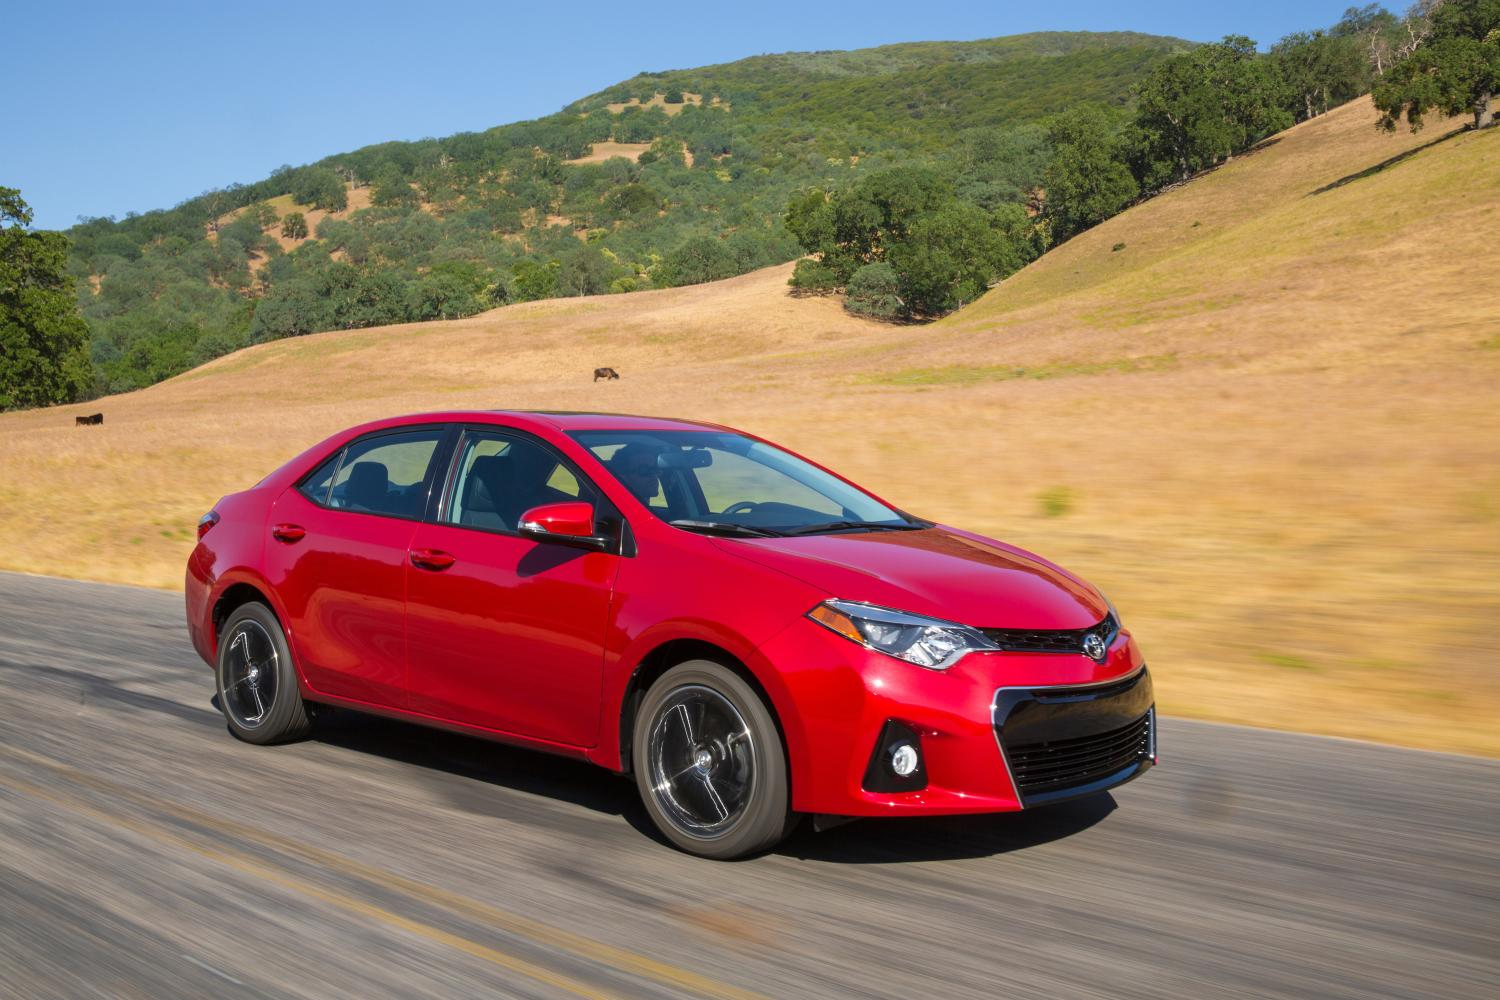 Toyota Corolla, one of Toyota's's top selling vehicles in the USA in 2017